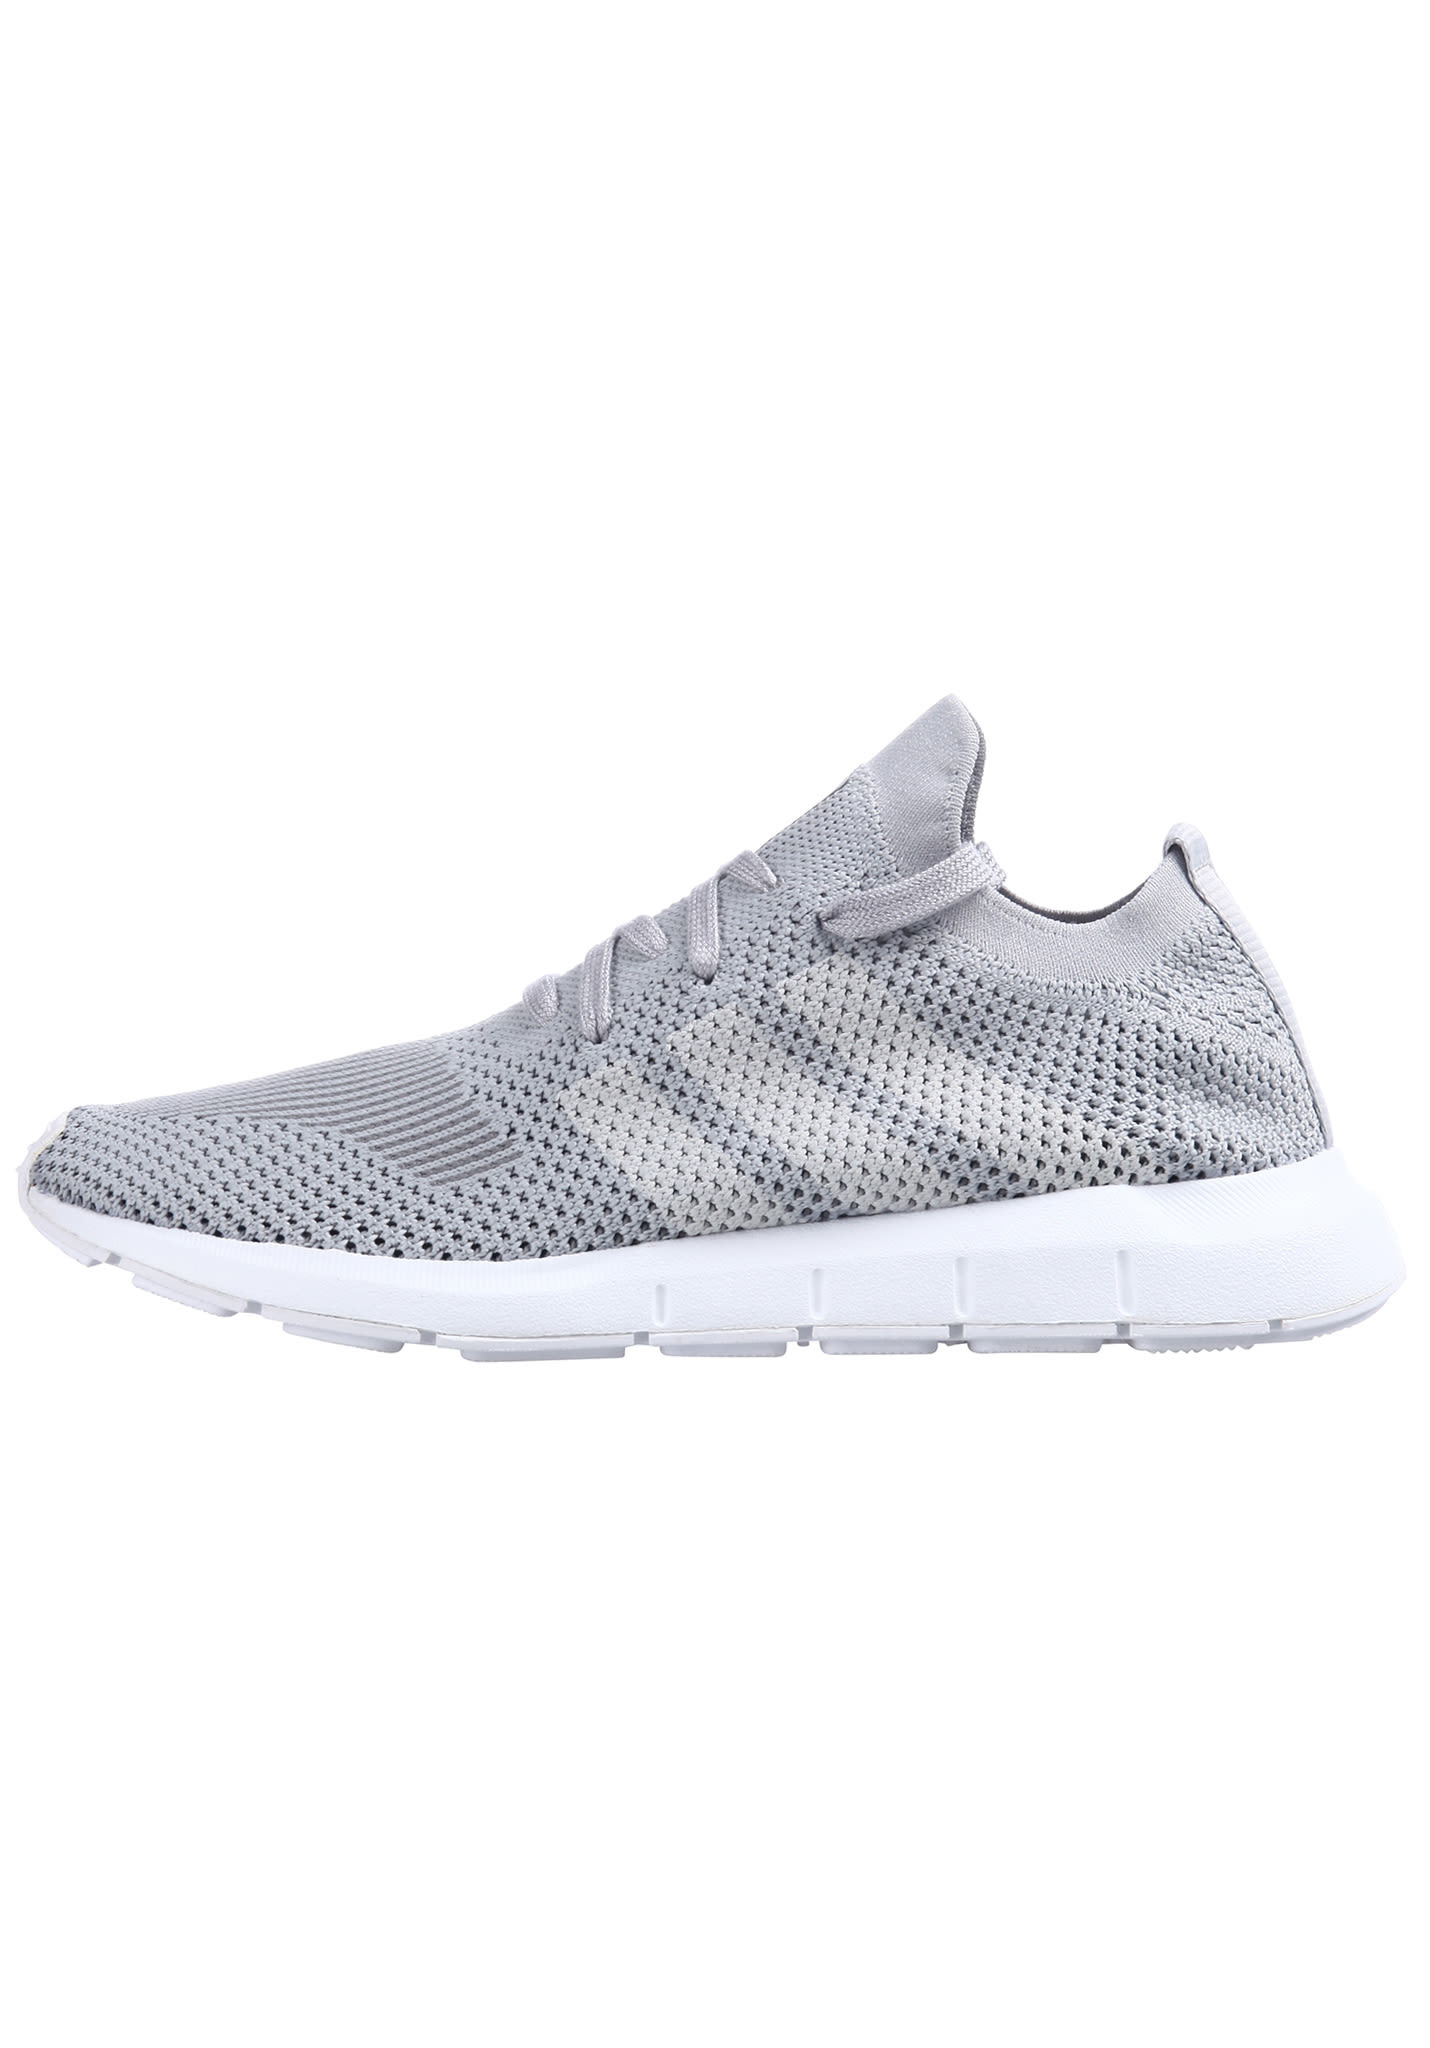 40a8f5f94bae5 ADIDAS ORIGINALS Swift Run PK - Sneakers for Women - Grey - Planet Sports